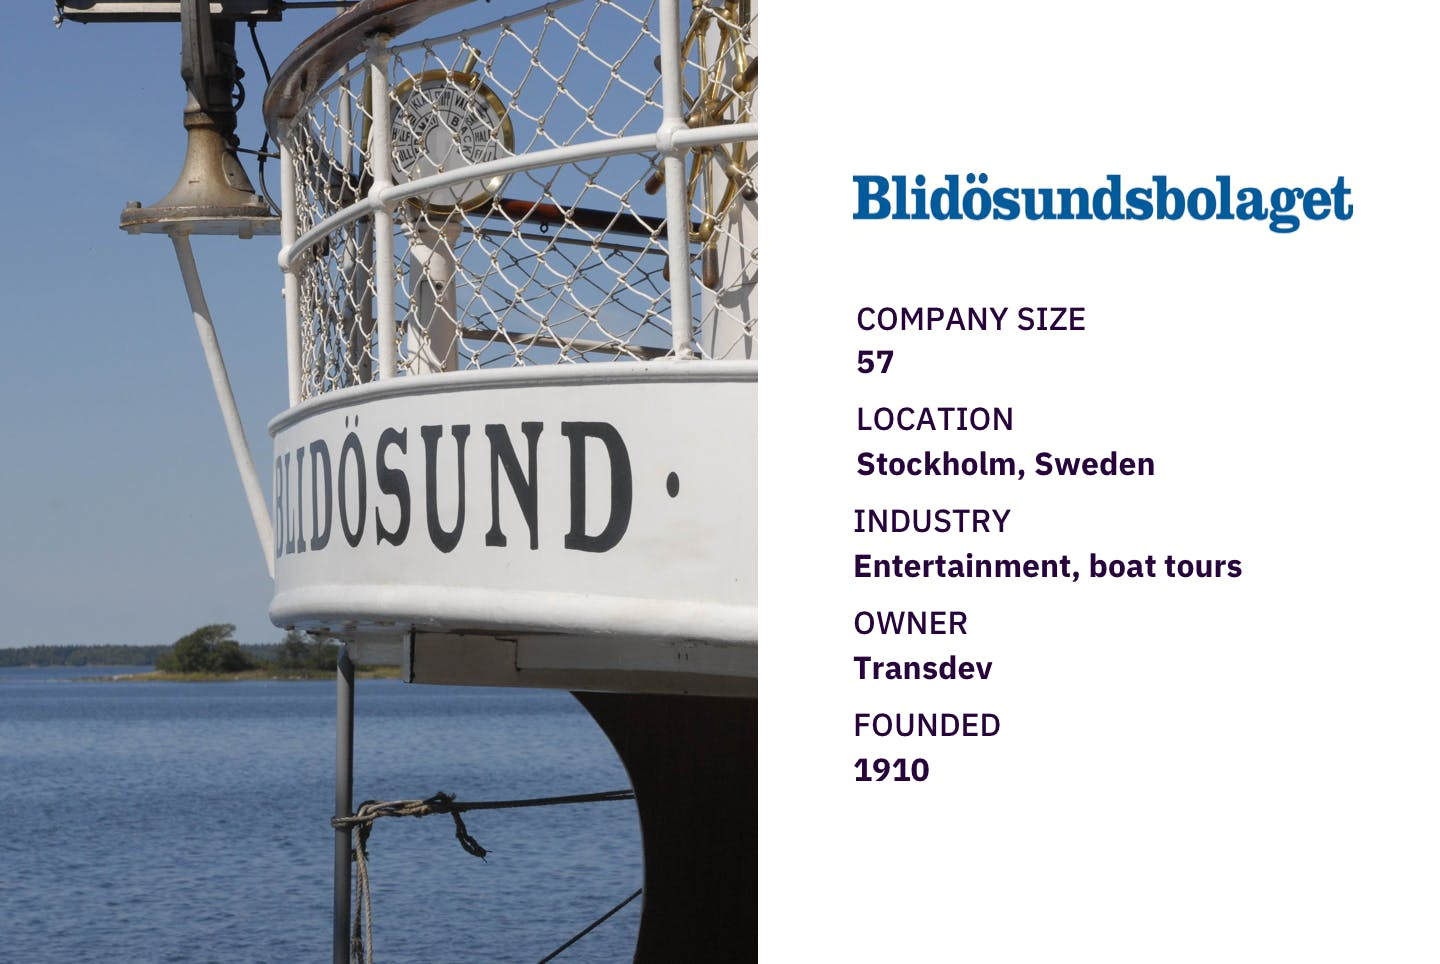 Close up of music cruise ship s/s Blidösund